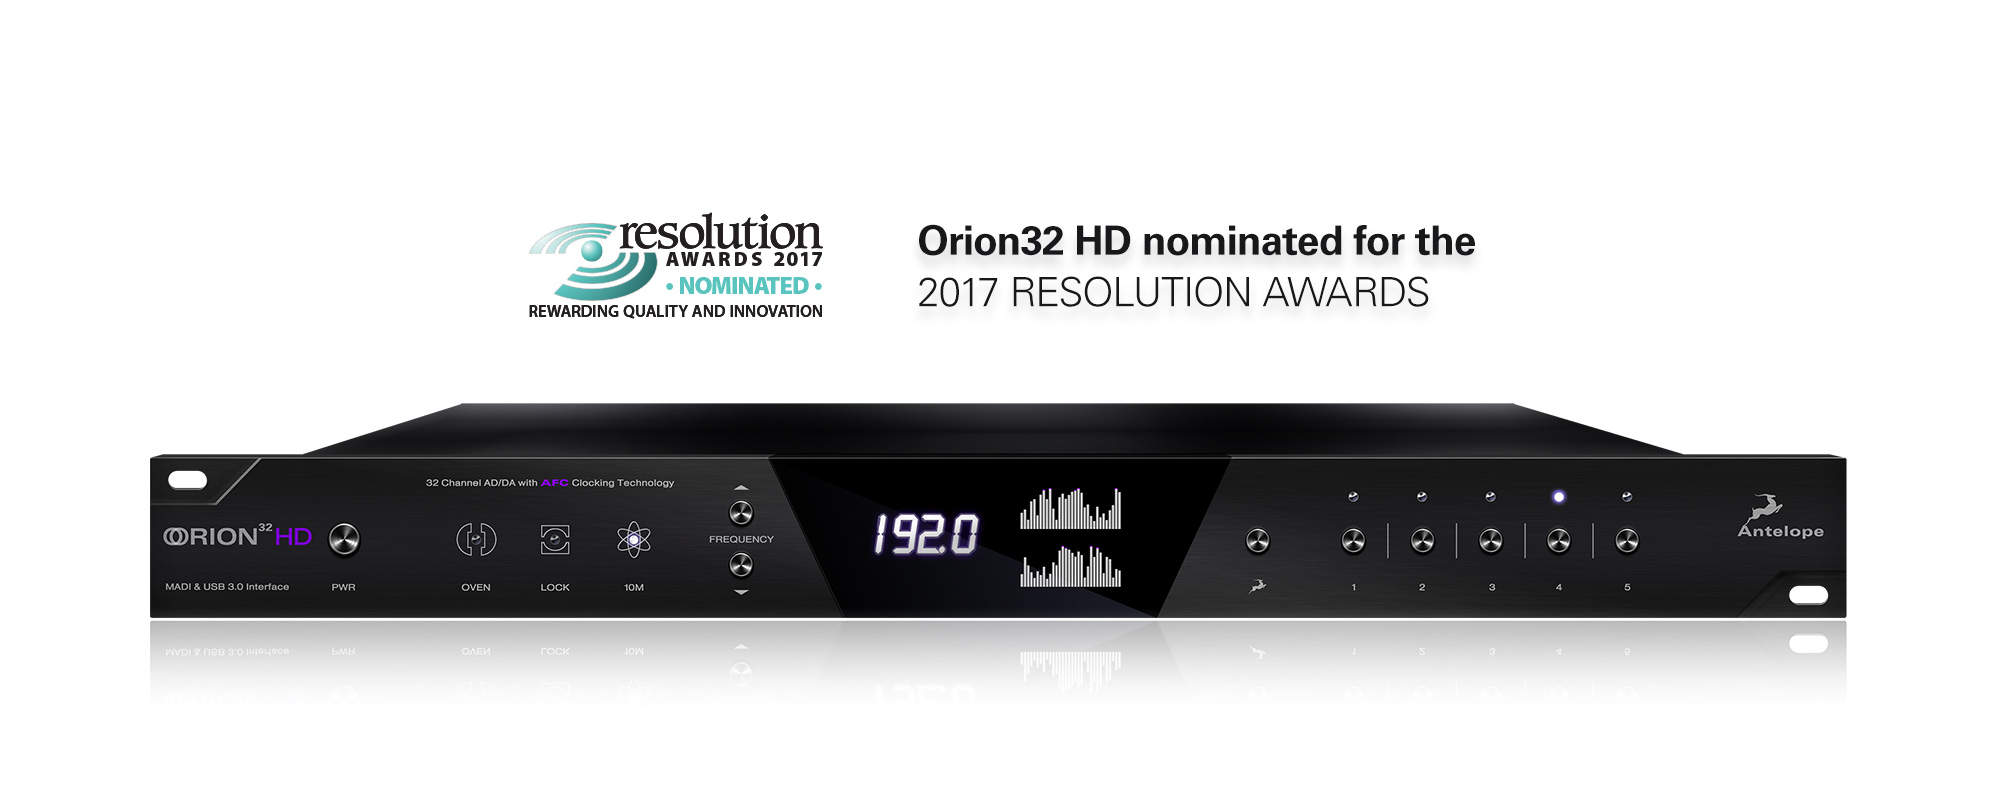 Orion32 HD nominated for the 2017 Resolution Magazine Awards